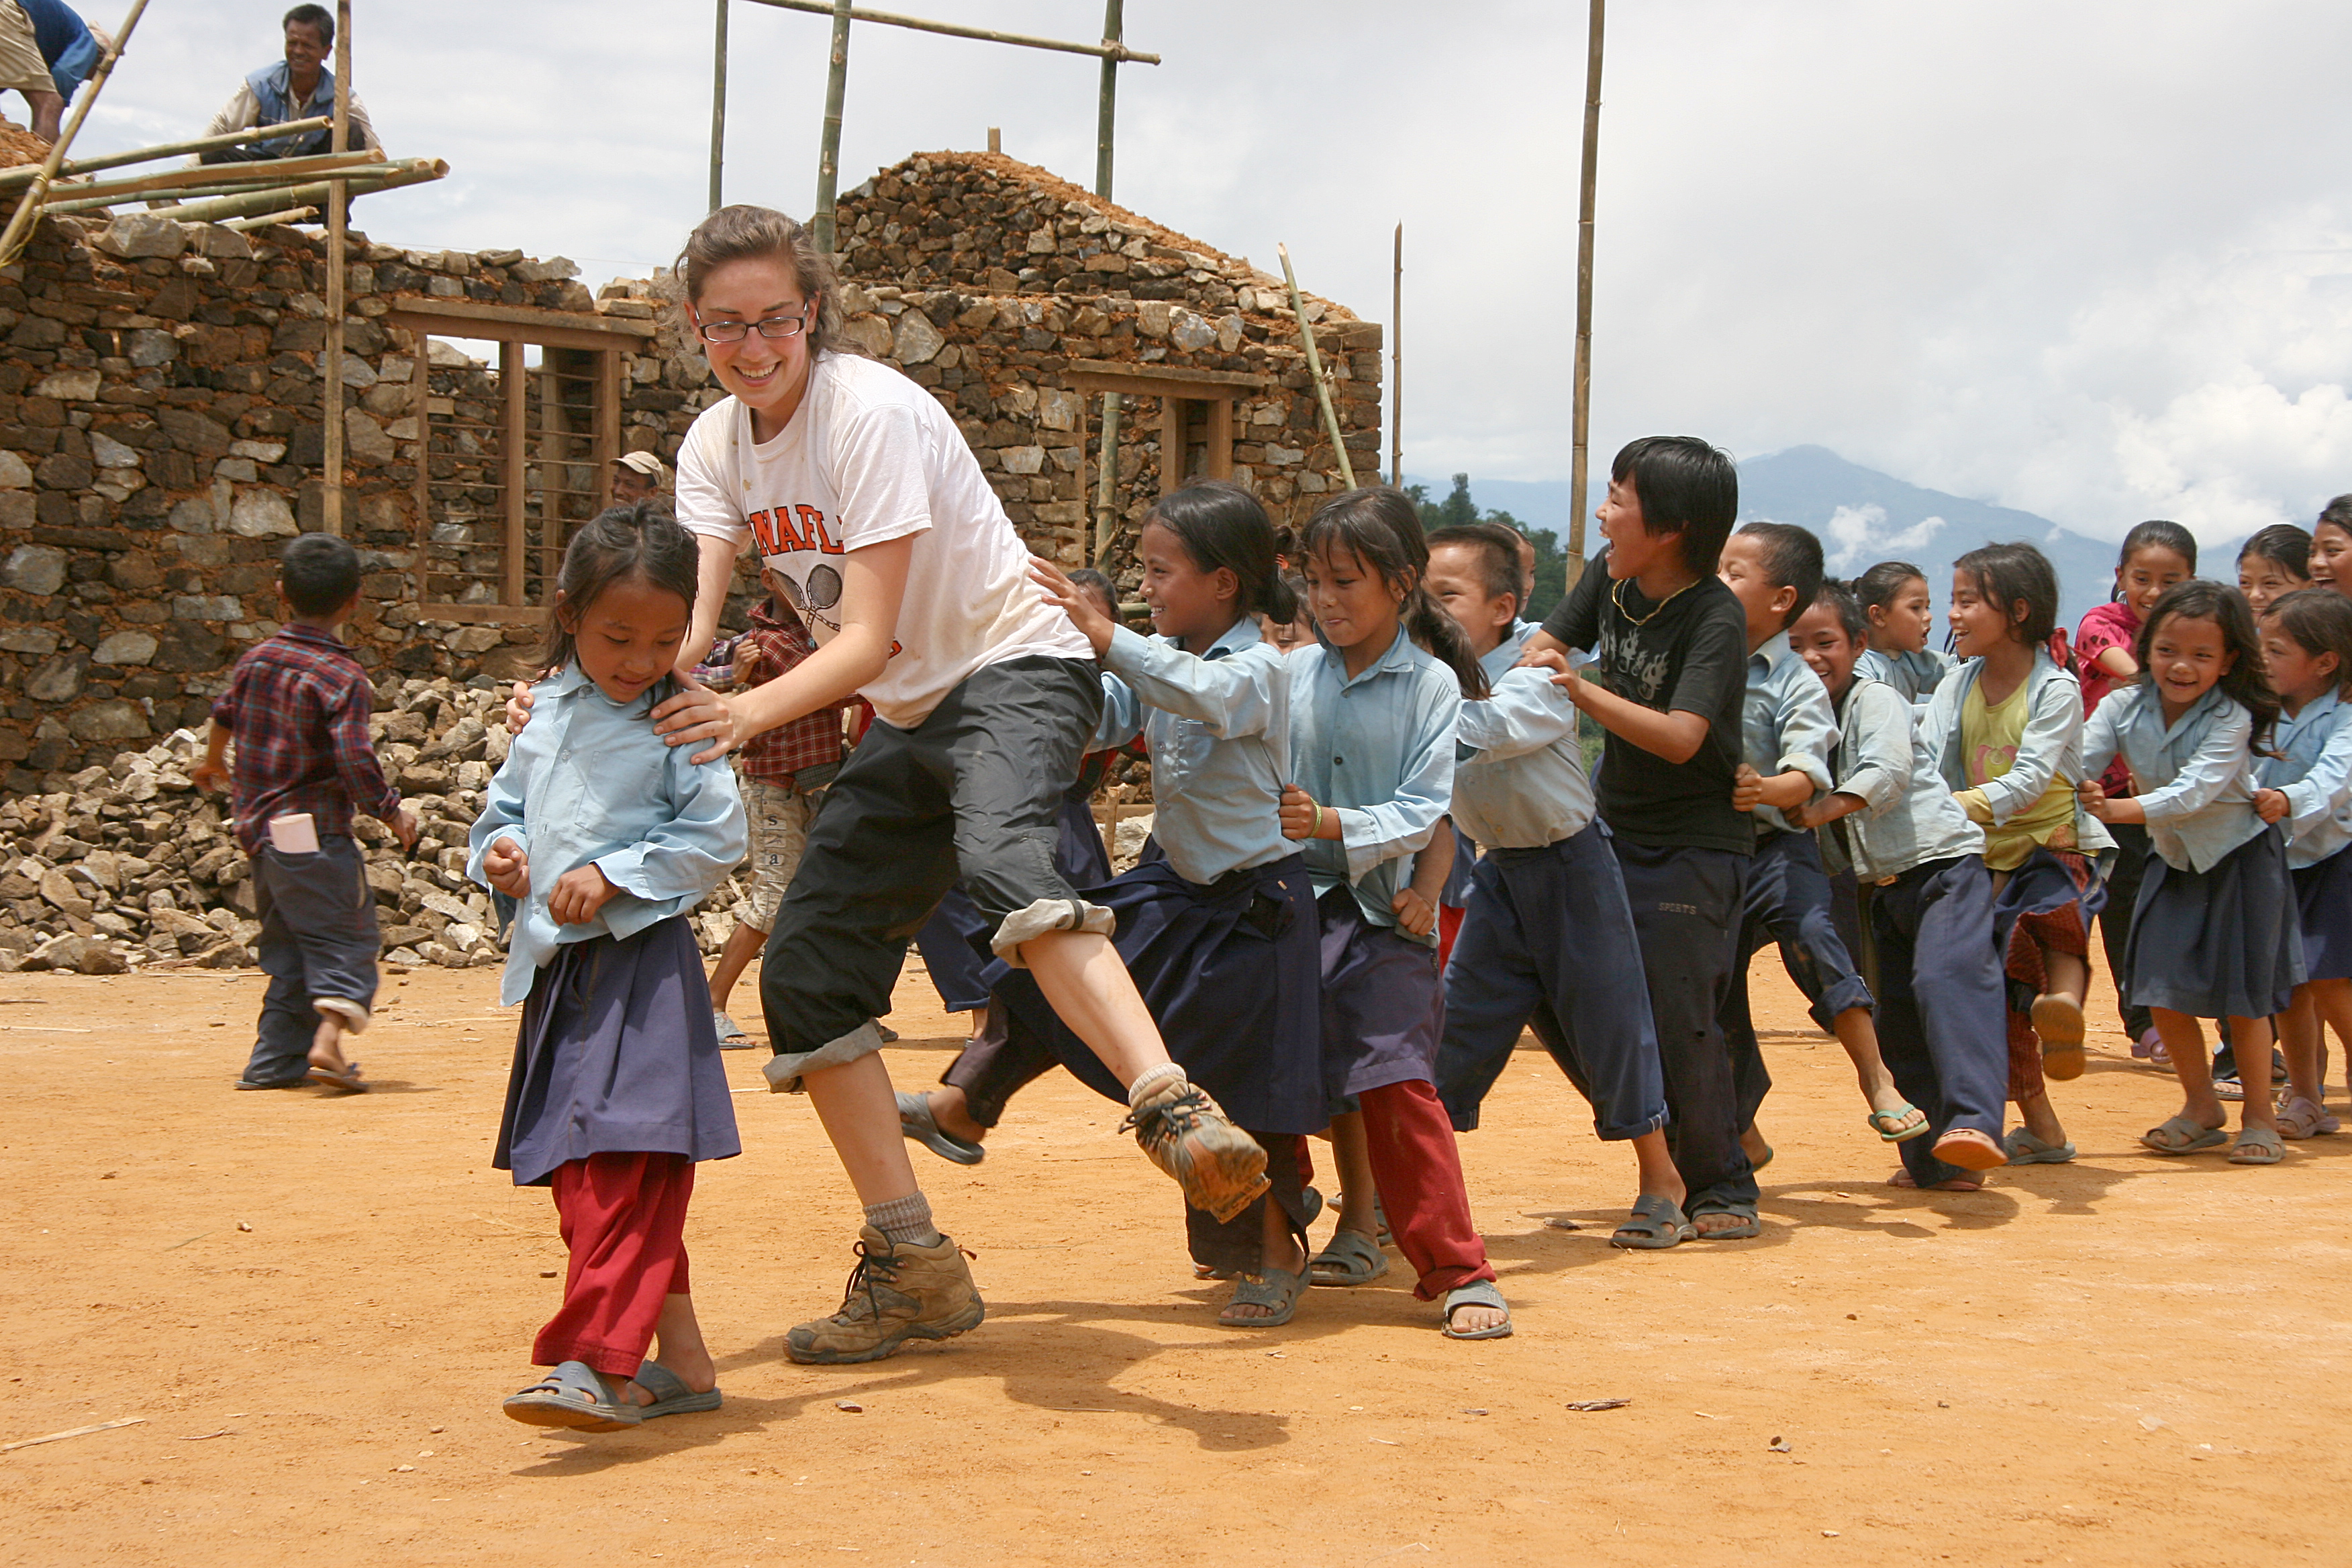 Summer Program - Promoting Volunteerism | Global Routes: Nepal. The Roof of the World. Service and Cultural Immersion.